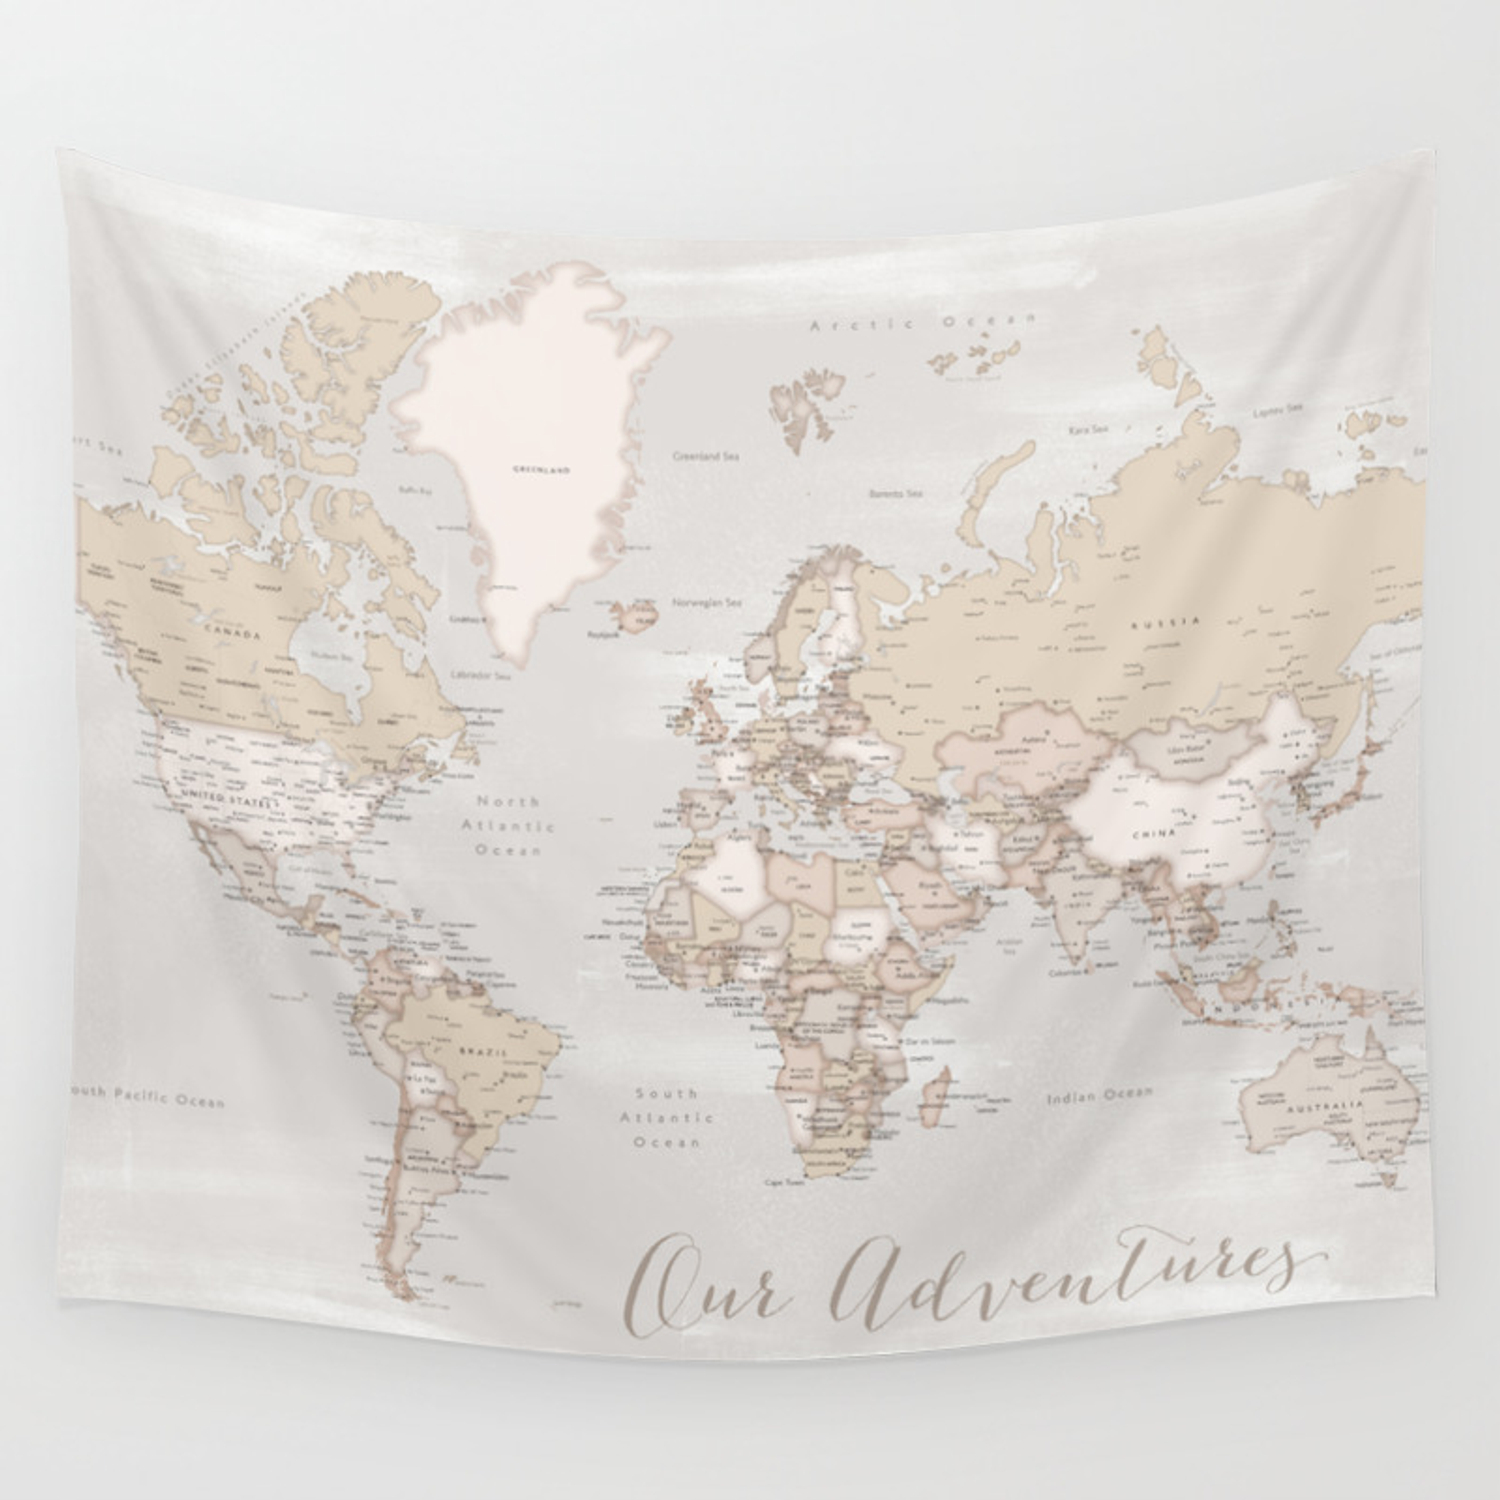 Our adventures, rustic detailed world map Wall Tapestry on